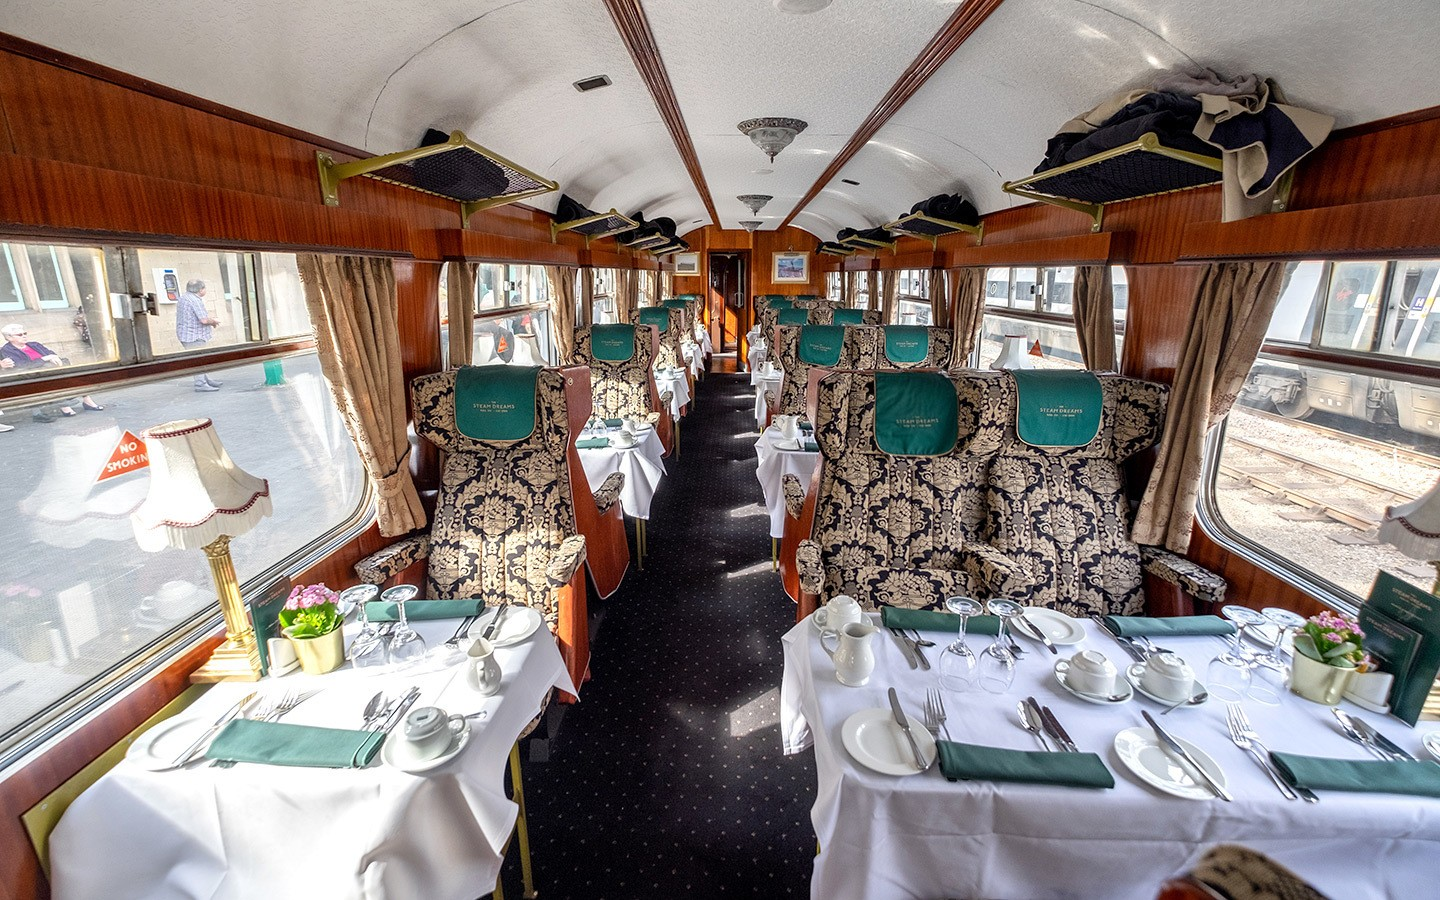 The Pullman Dining carriage